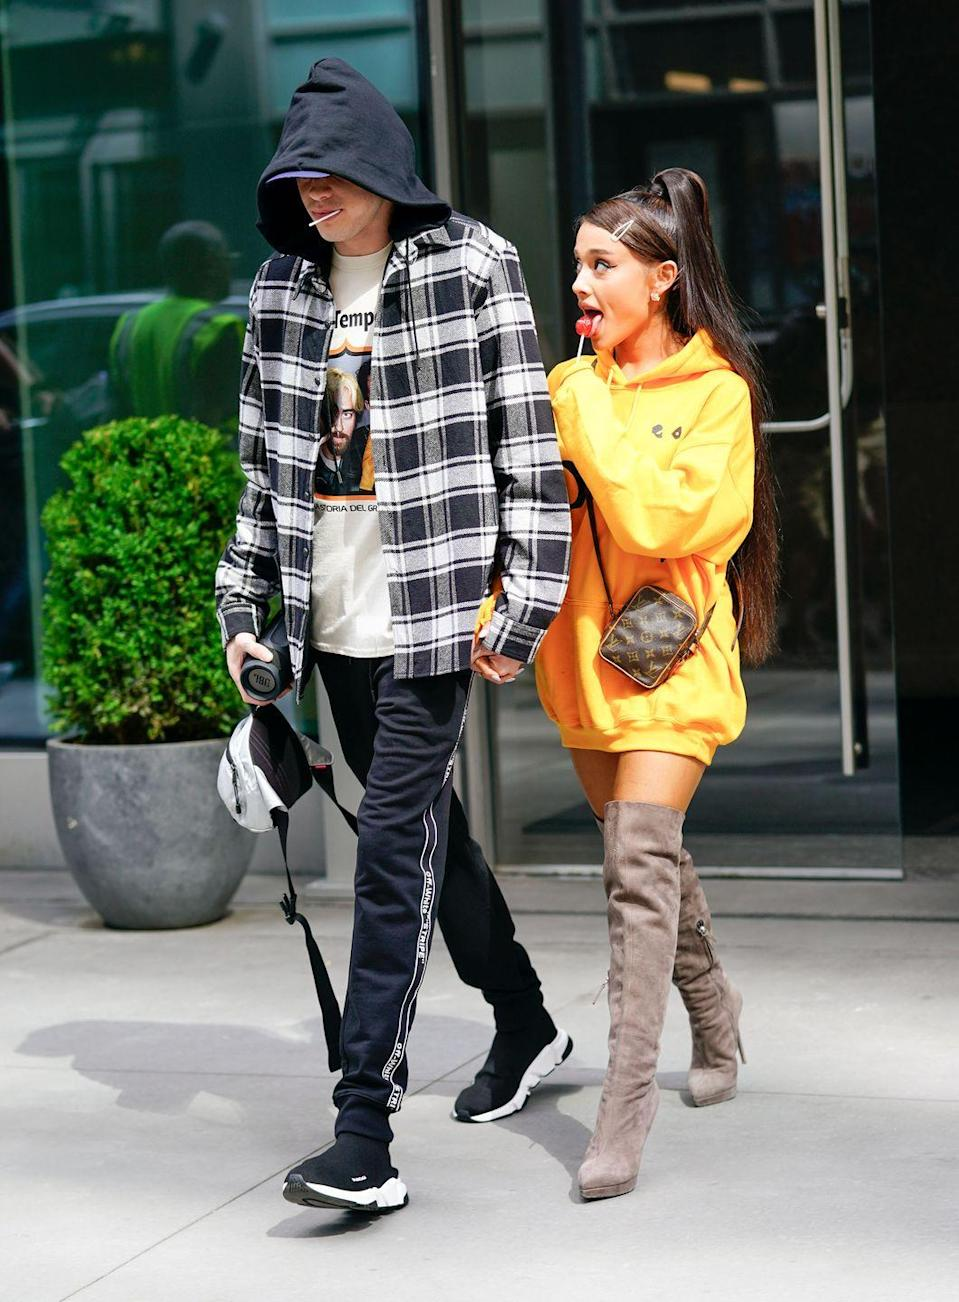 "<p>Fans weren't sold on the whirlwind romance, especially since it came on the heels of Ariana's split with Mac Miller. Even after they broke up, Ariana's fanbase was reeling about comments Pete made about their relationship, prompting Ariana's manager, Scooter Braun, to <a href=""https://www.insider.com/ariana-grande-manager-scooter-braun-defended-pete-davidson-2018-11"" rel=""nofollow noopener"" target=""_blank"" data-ylk=""slk:step in and defend the comedian"" class=""link rapid-noclick-resp"">step in and defend the comedian</a>.</p>"